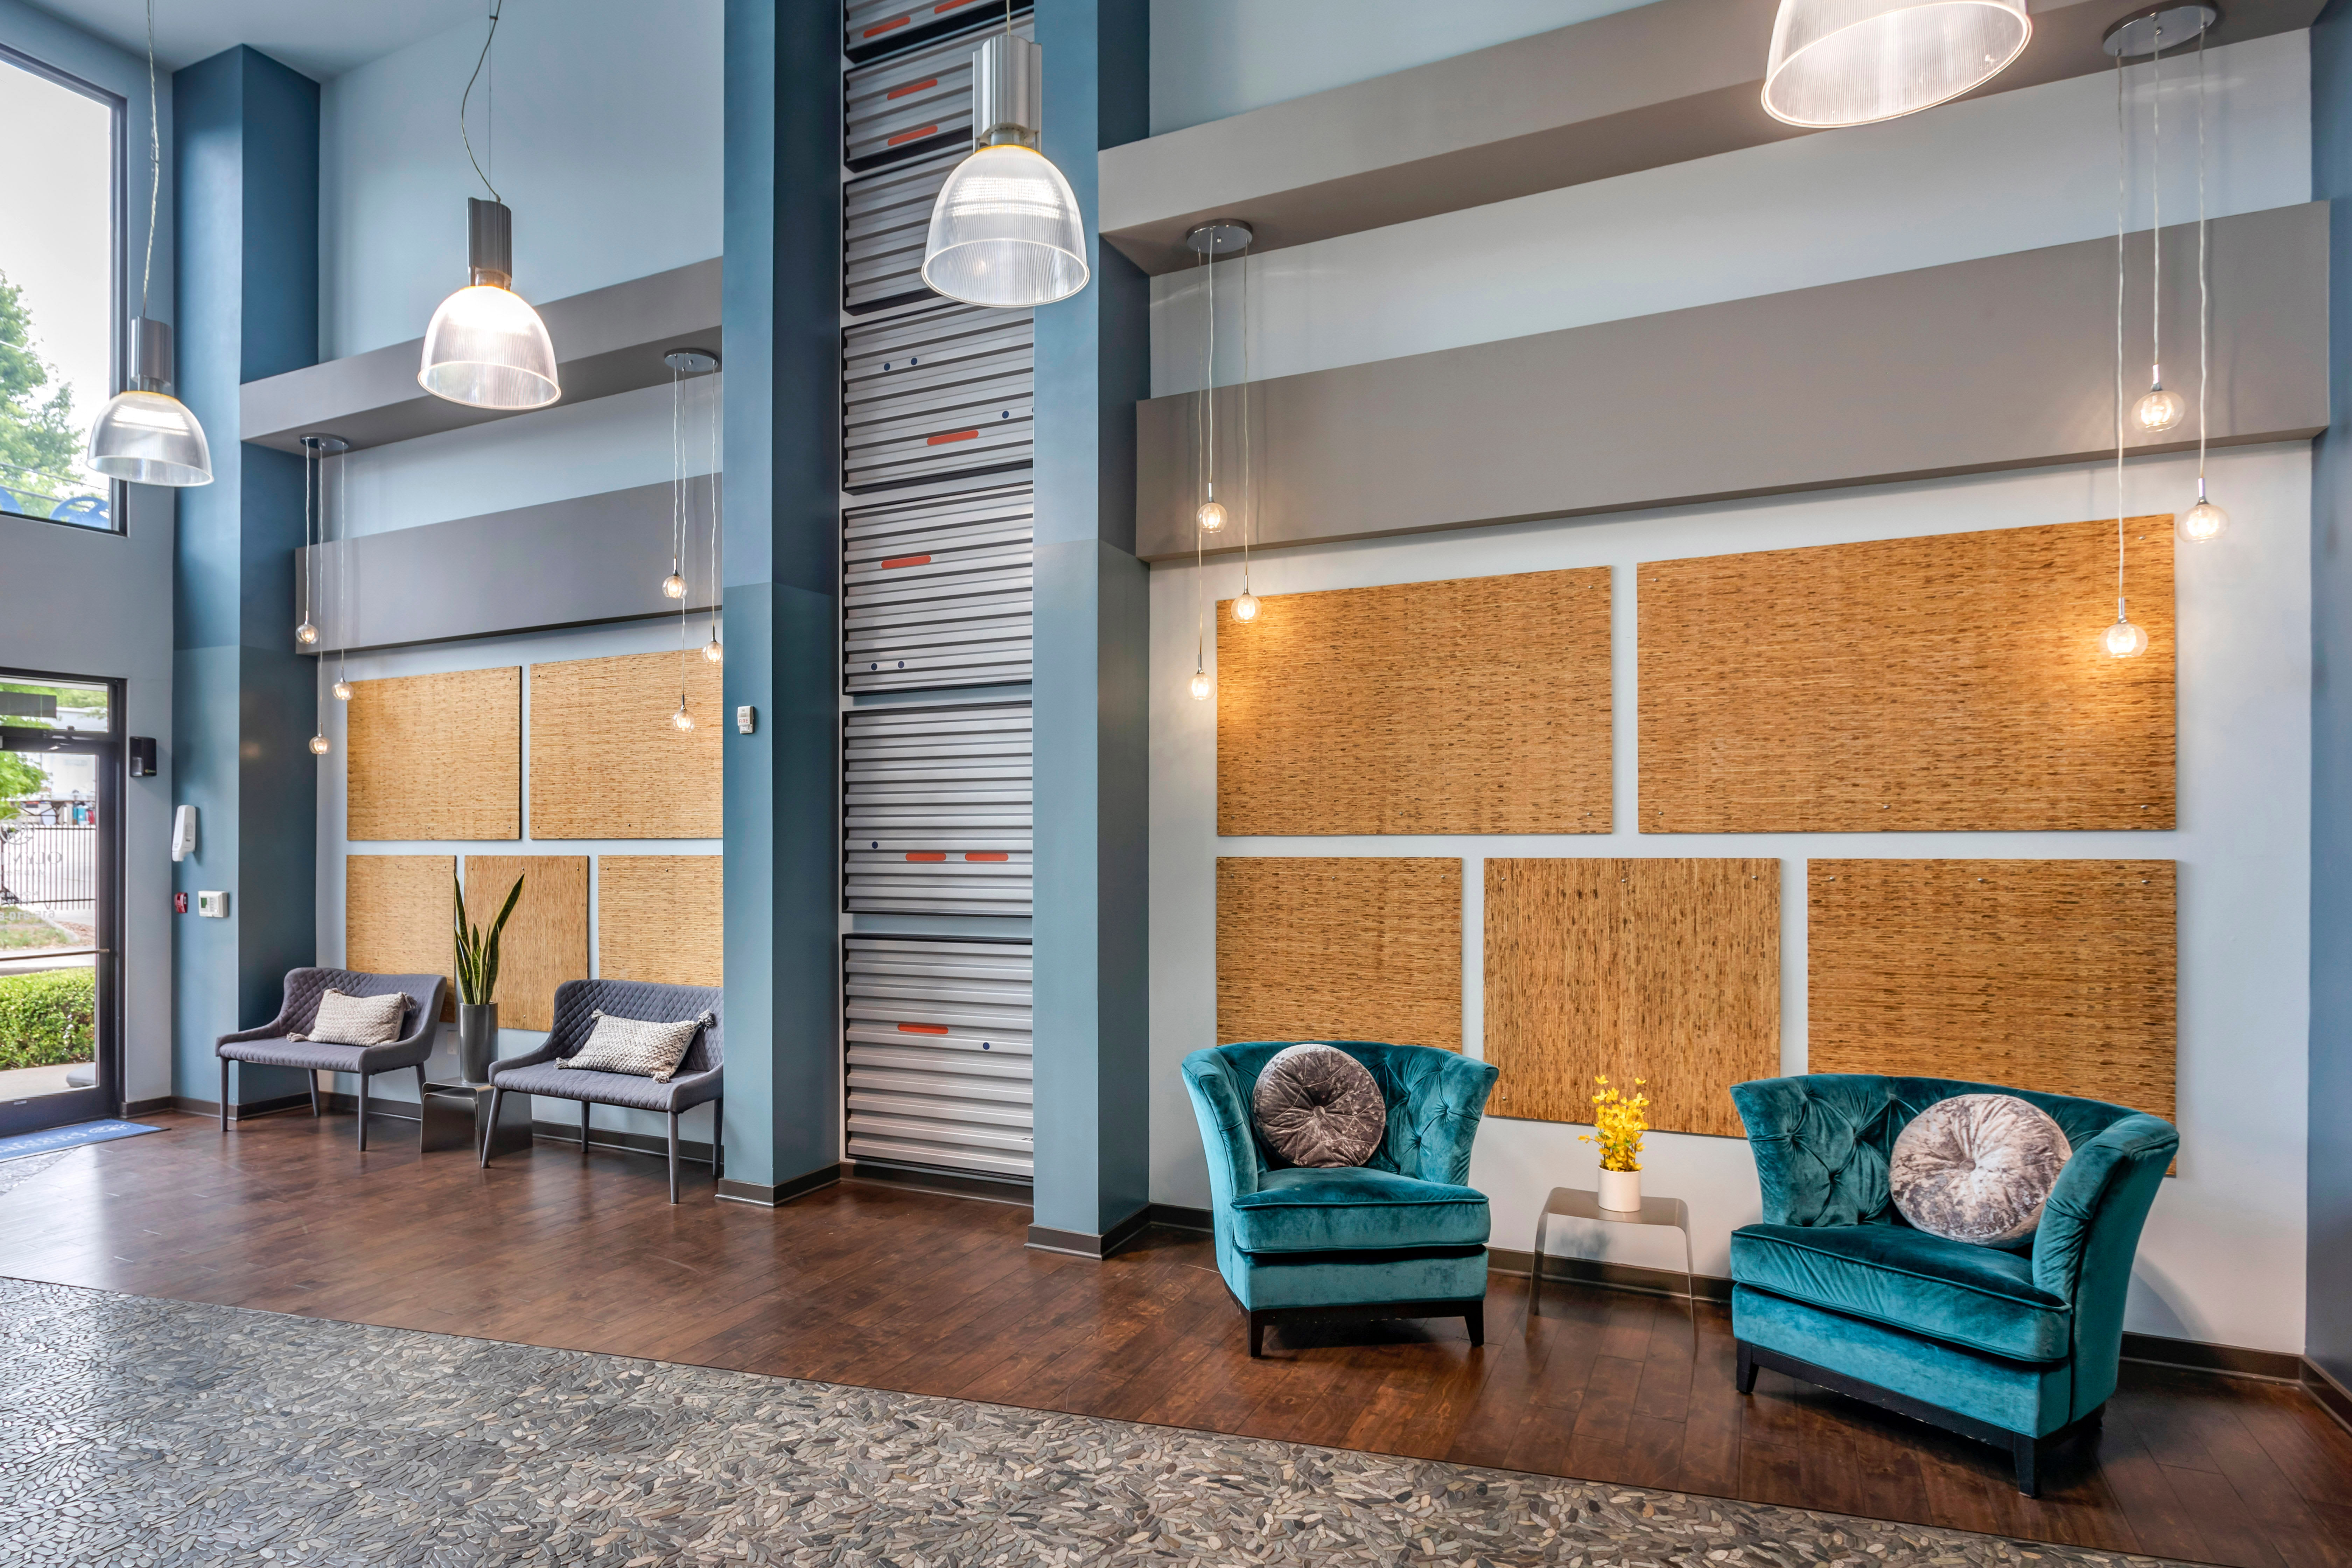 Comfortable places to sit in the lobby at Olympus Midtown in Nashville, Tennessee